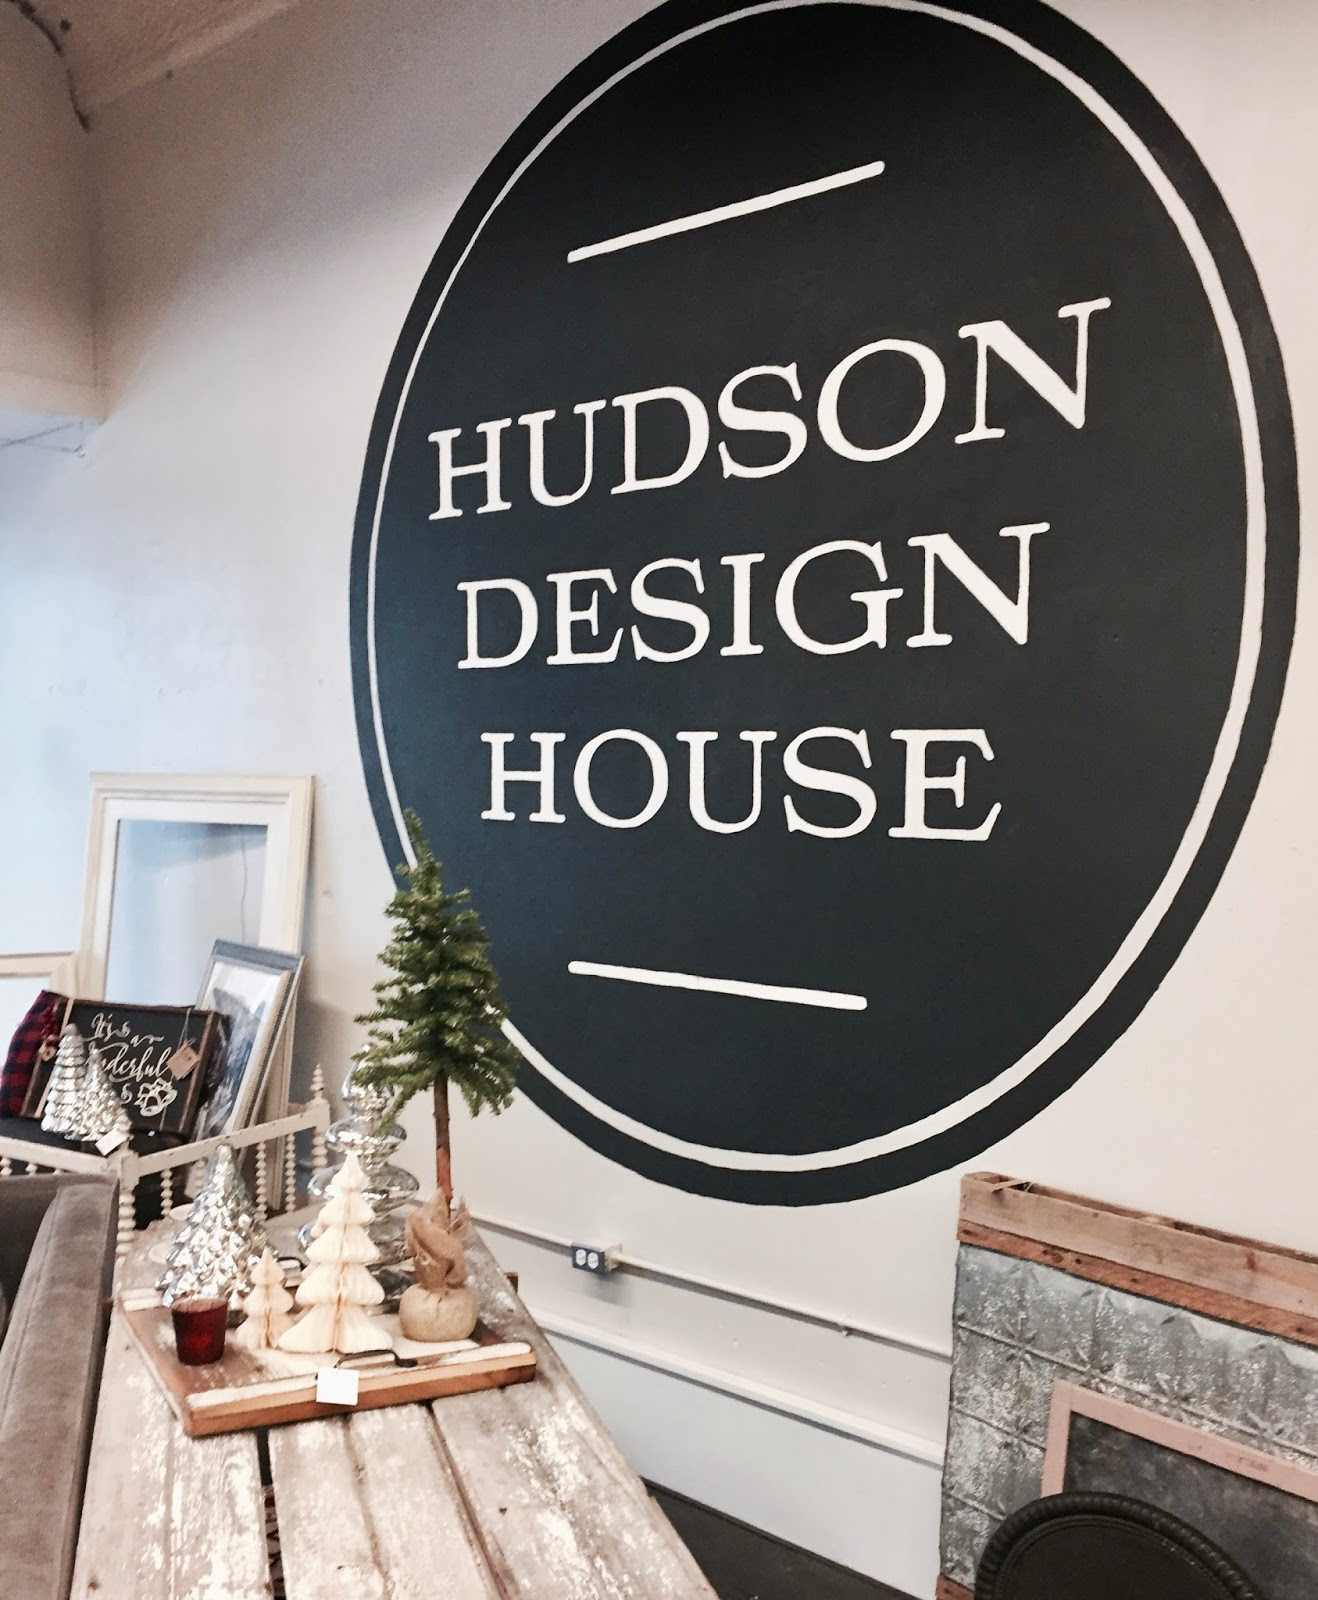 At rivercrest cottage oswego illinois and hudson design house for Hudson home designs